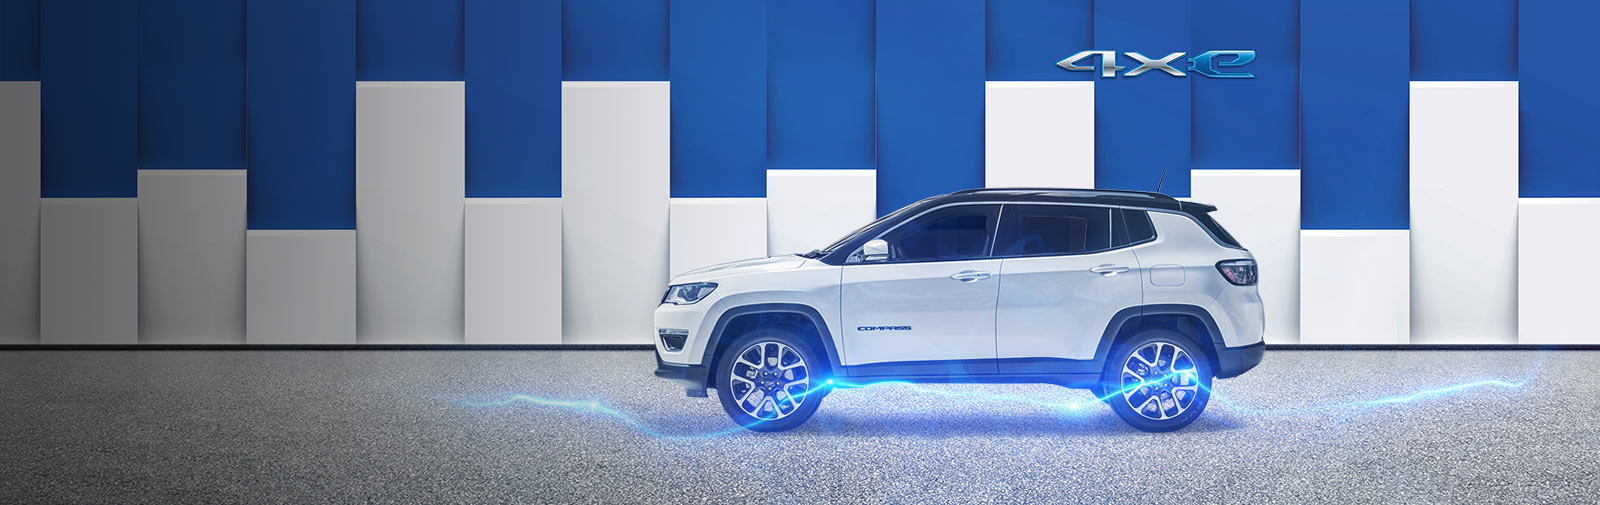 OFFRE BUSINESS: JEEP<sup>&reg;</sup> COMPASS Hybride rechargeable